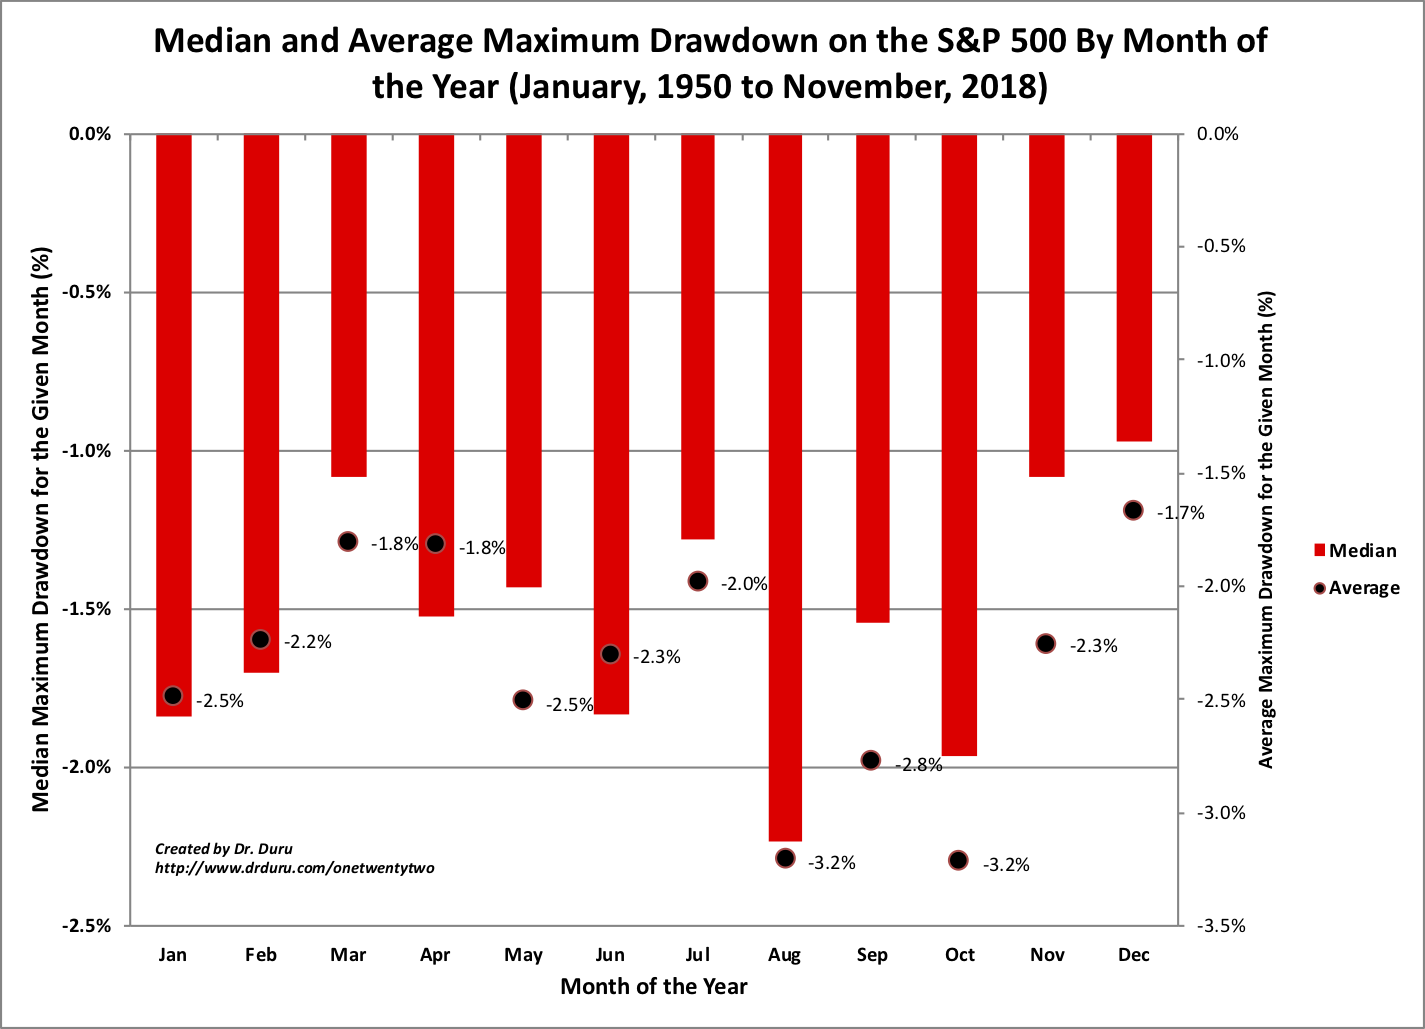 Median and Average Maximum Drawdown on the S&P 500 By Month of the Year (January, 1950 to November, 2018)